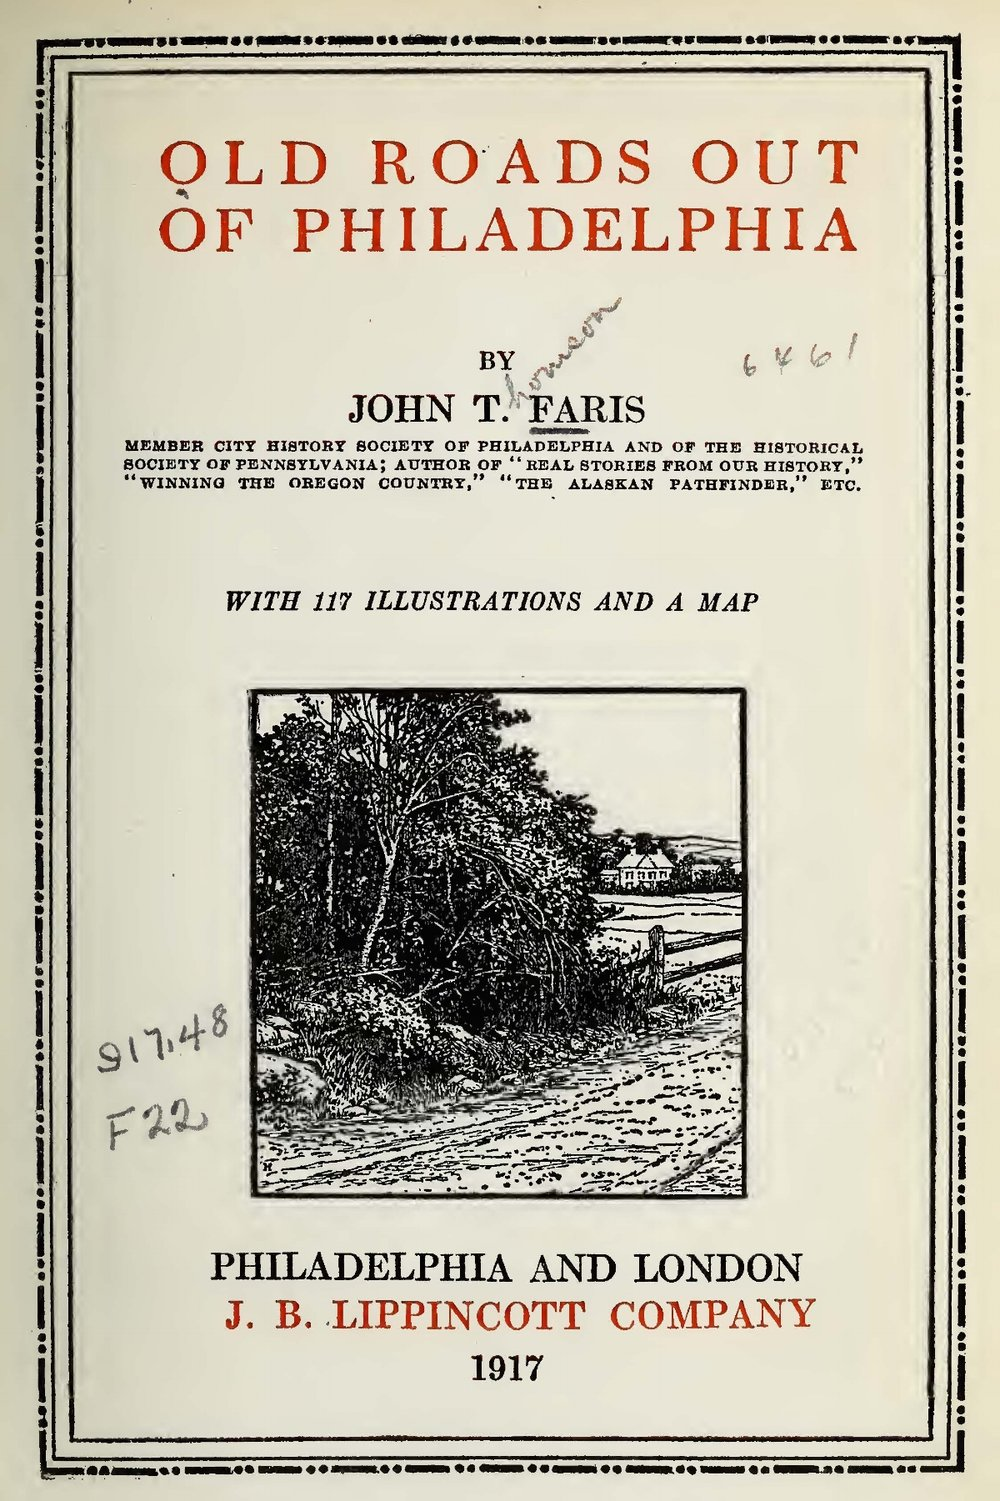 Faris, John Thomson, Old Roads Out of Philadelphia Title Page.jpg